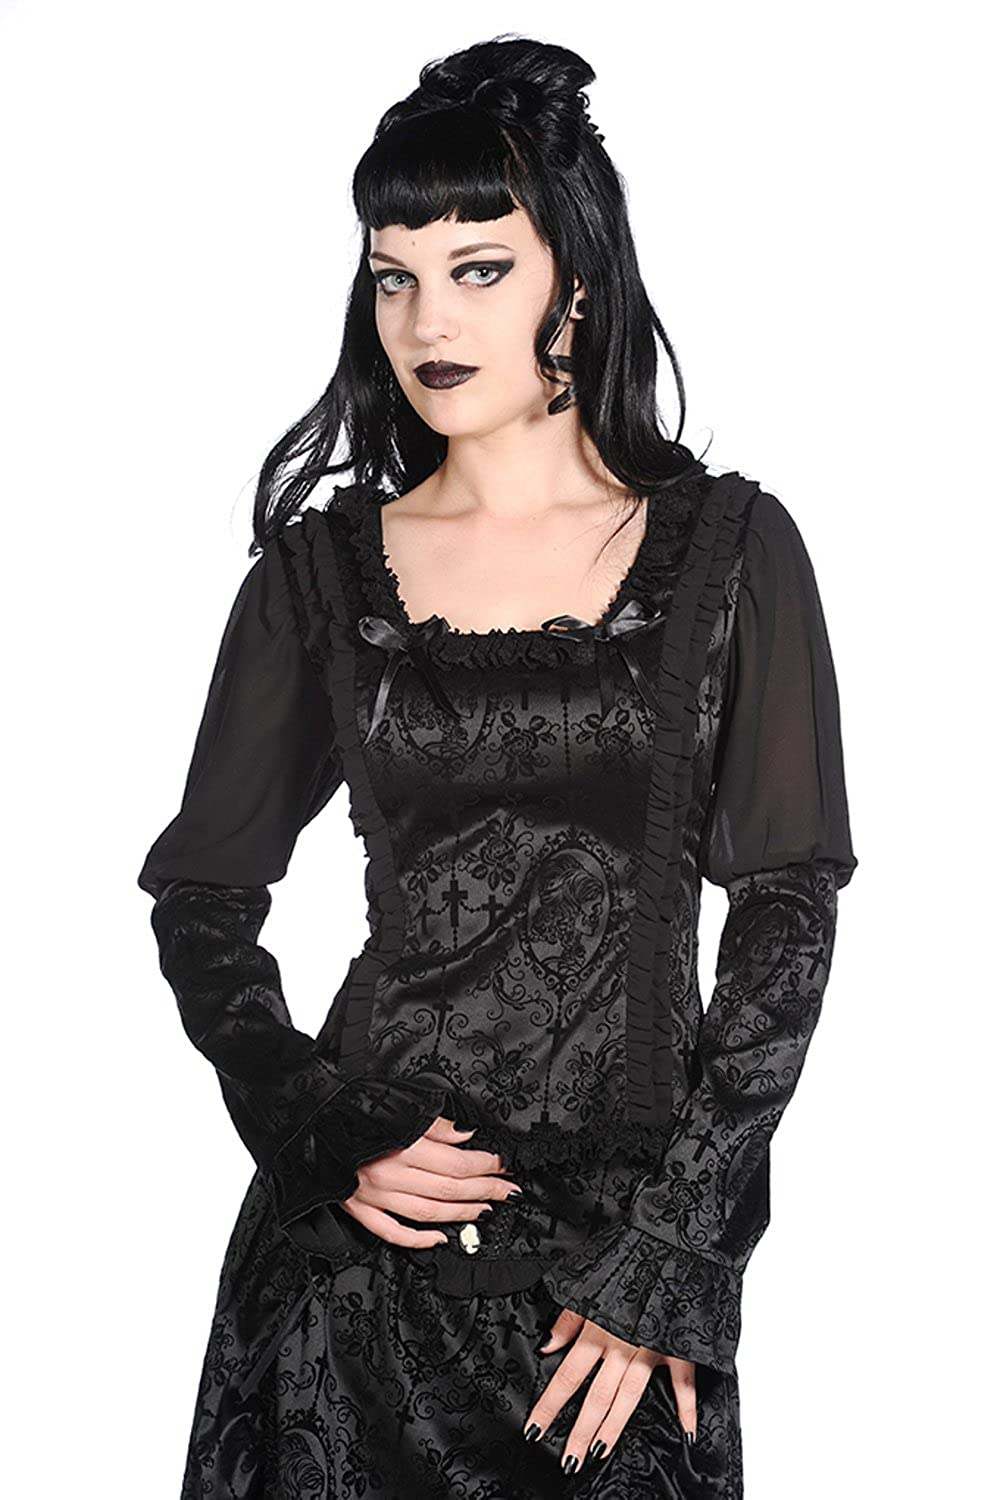 Banned Black Satin Corset Shirt $49.95 AT vintagedancer.com